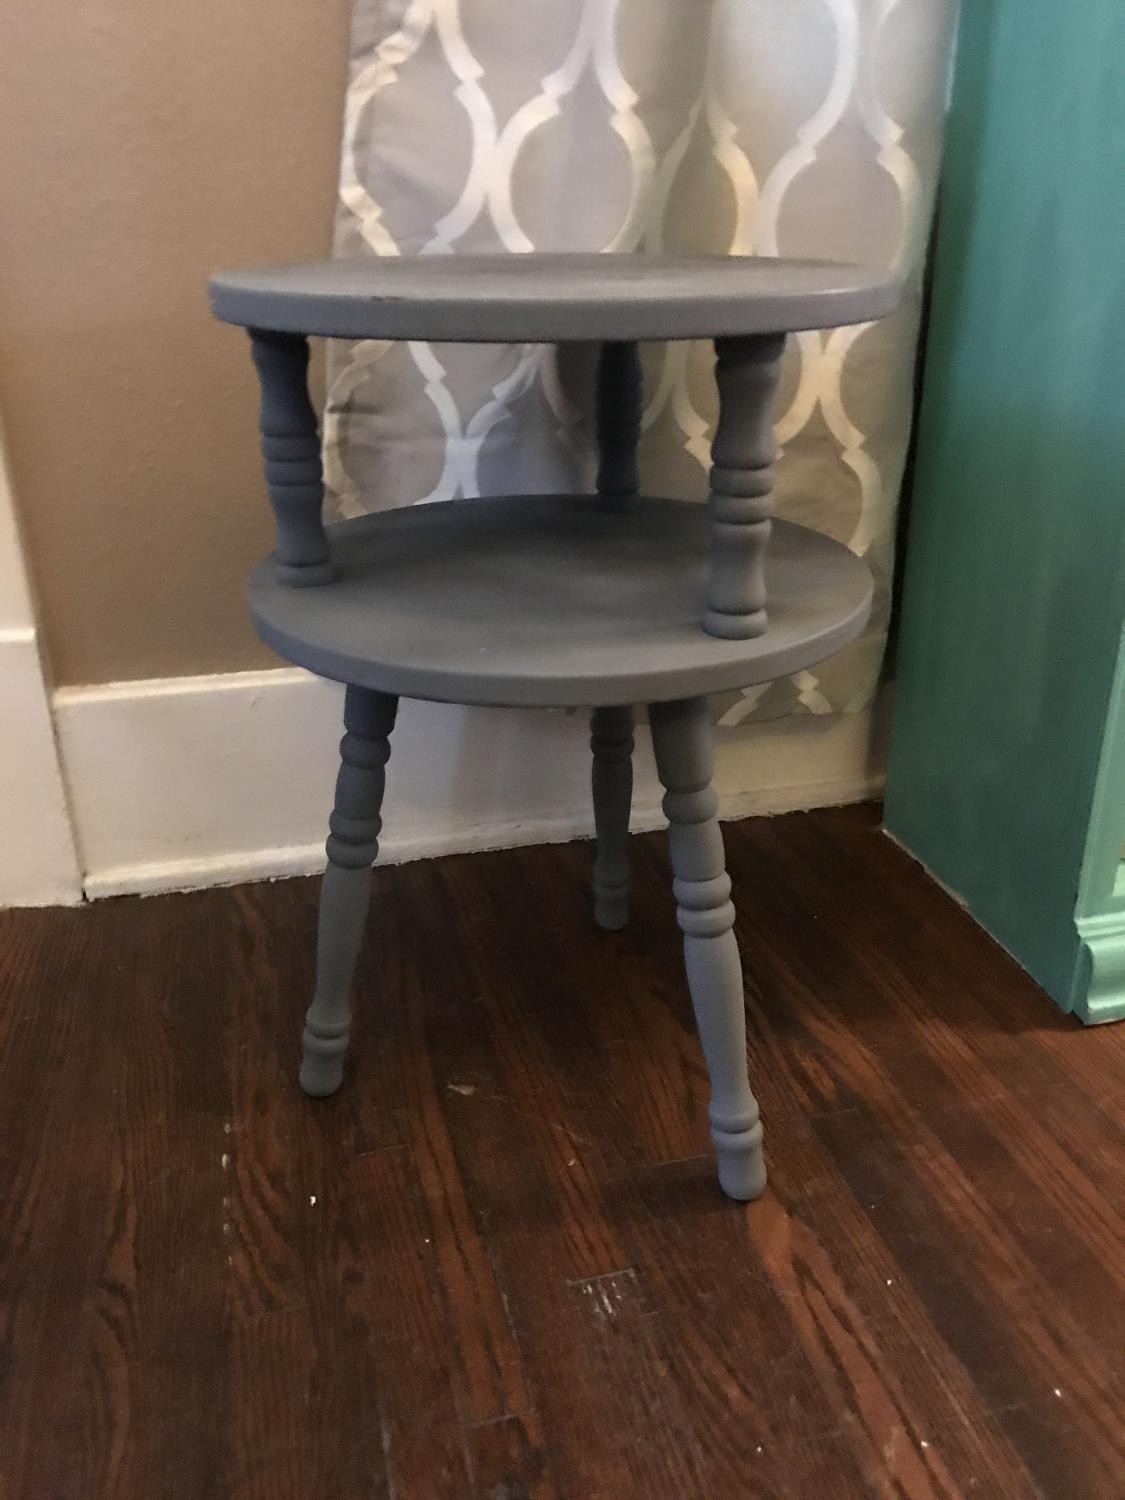 Find more small gray side table or plant stand for sale at for Table stand i 52 compose